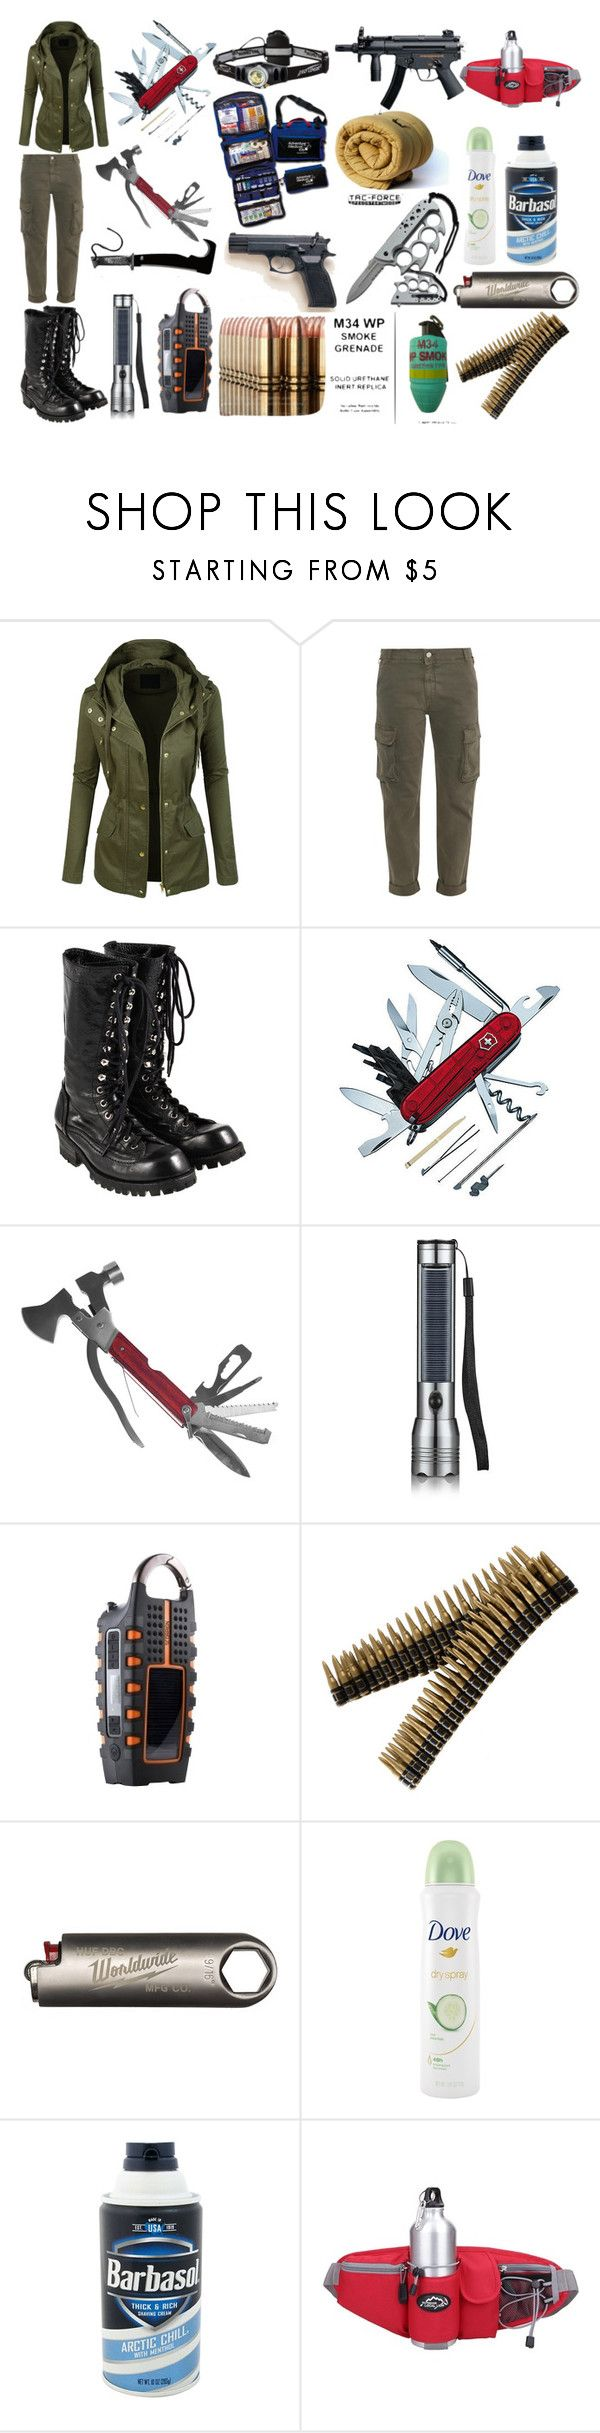 """Zombie Apocalypse Survival outfit and kit"" by senna-bluefire ❤ liked on Polyvore featuring LE3NO, STELLA McCARTNEY, Comme des Garçons, Swiss Army, Whetstone Cutlery, HUF and Dove"